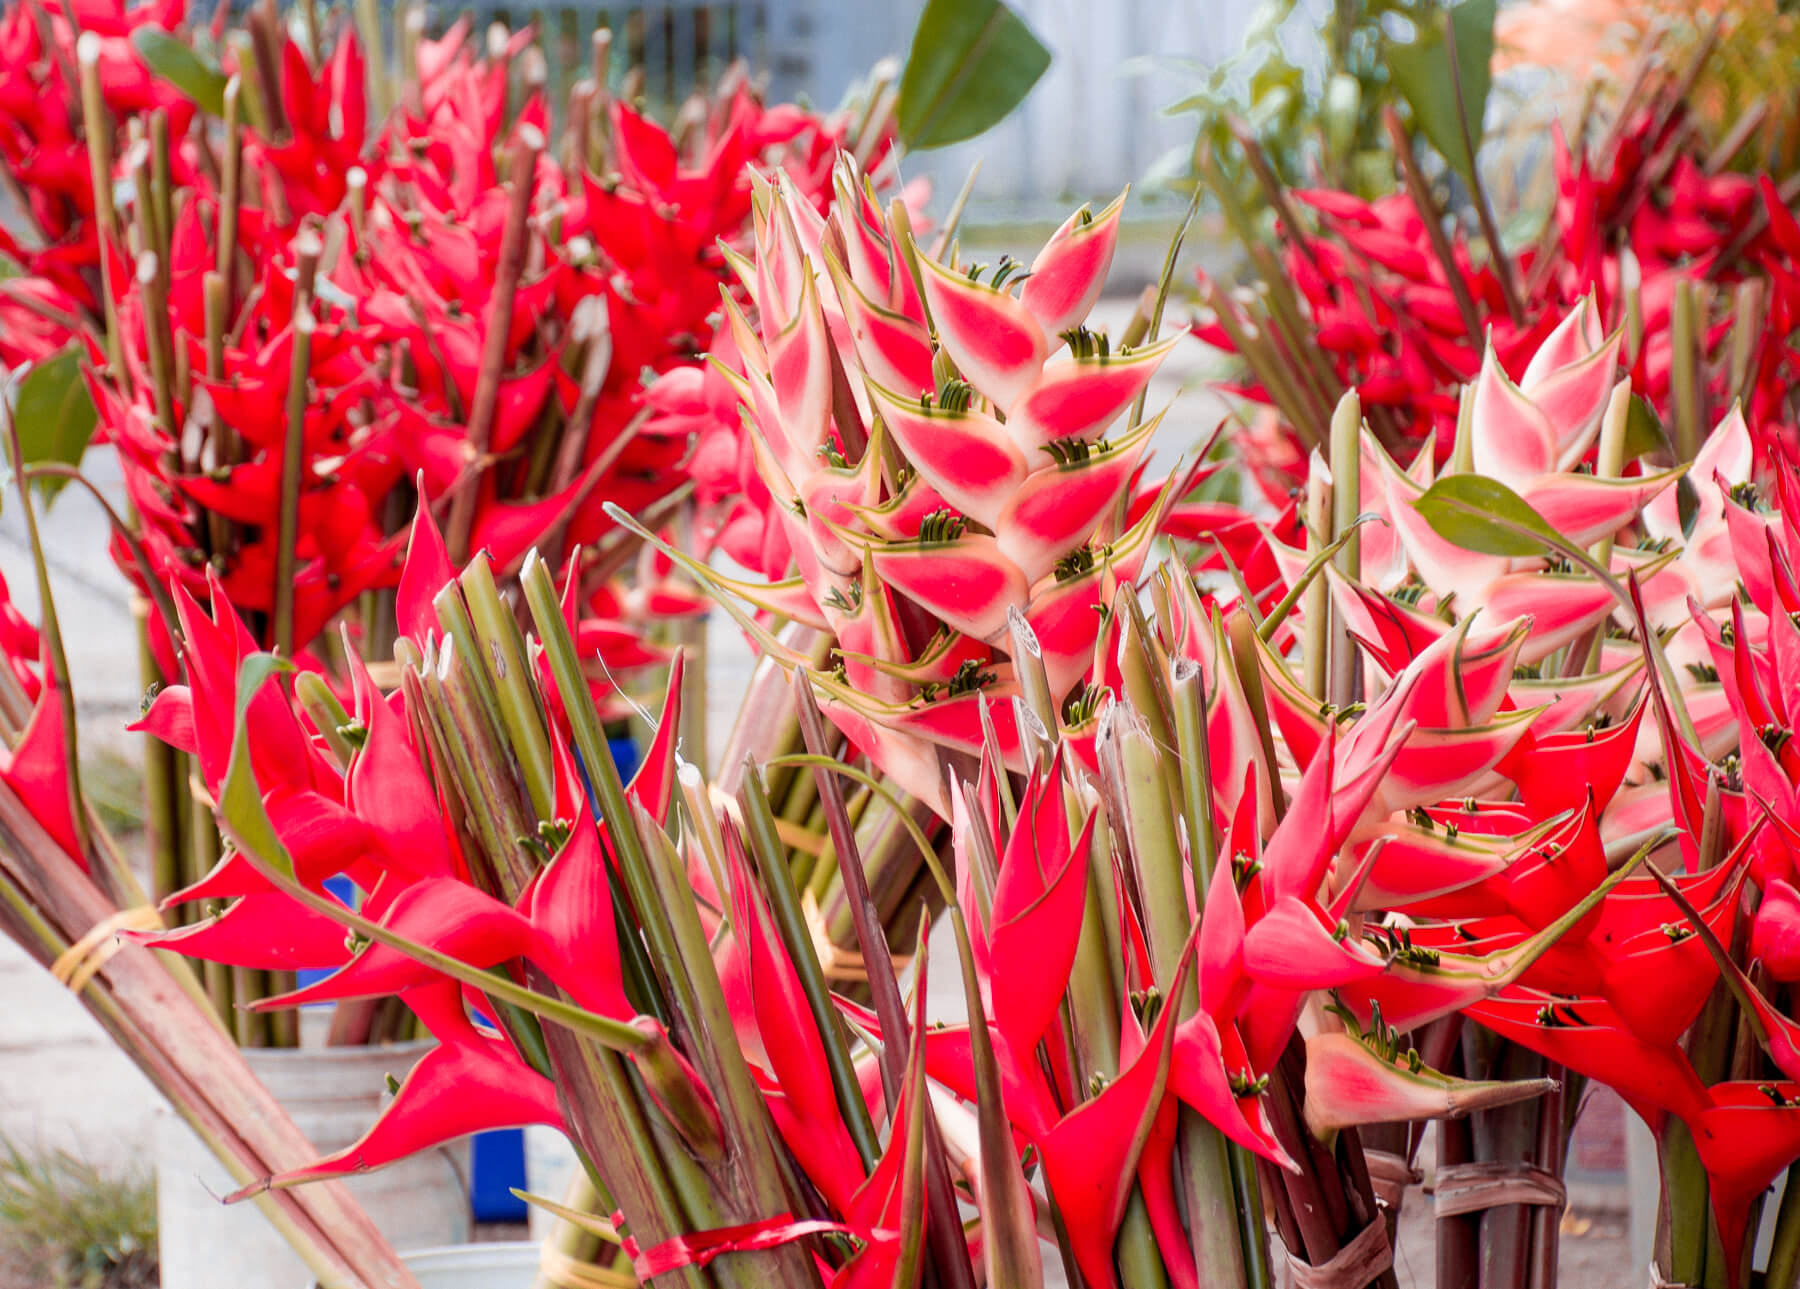 Bright red leaves from flowers at the Port Vila flower market